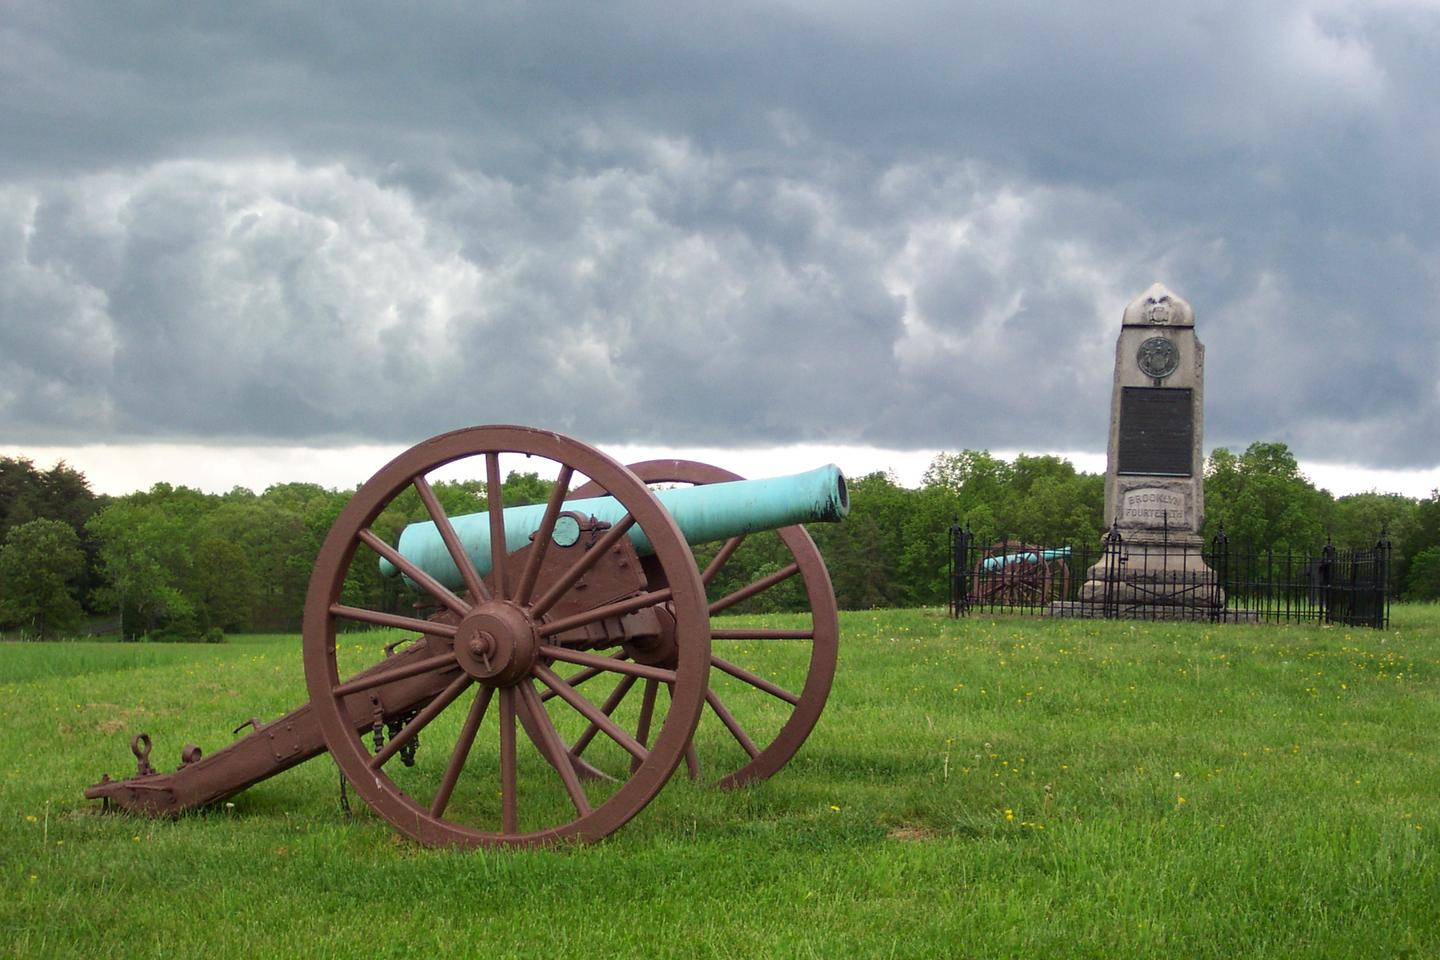 14th Brooklyn MonumentThe 14th Brooklyn Monument overlooks the scene of heavy fighting near Groveton during Second Manassas.